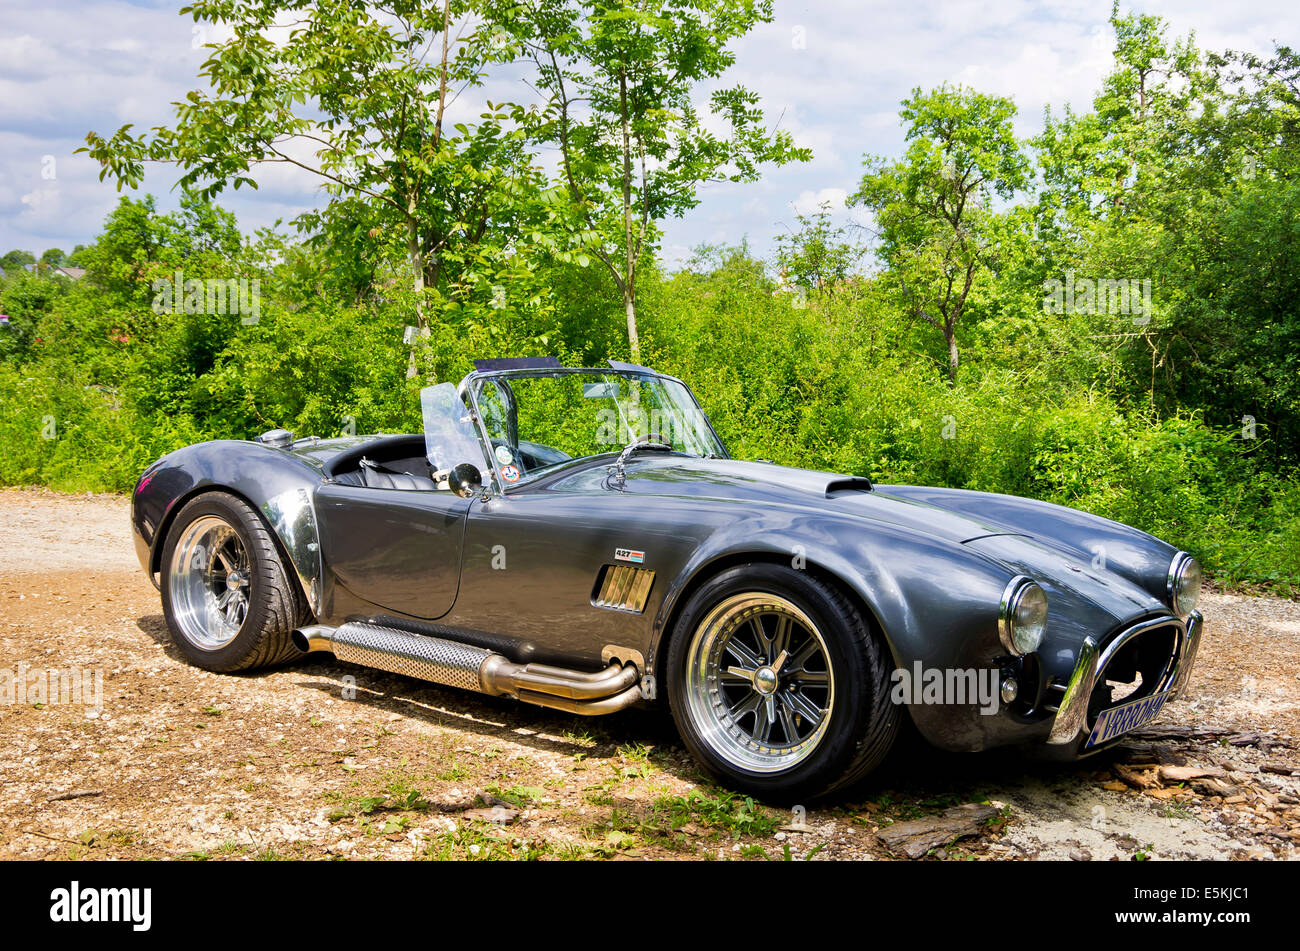 Shelby Cobra 427 classic car. Stock Photo